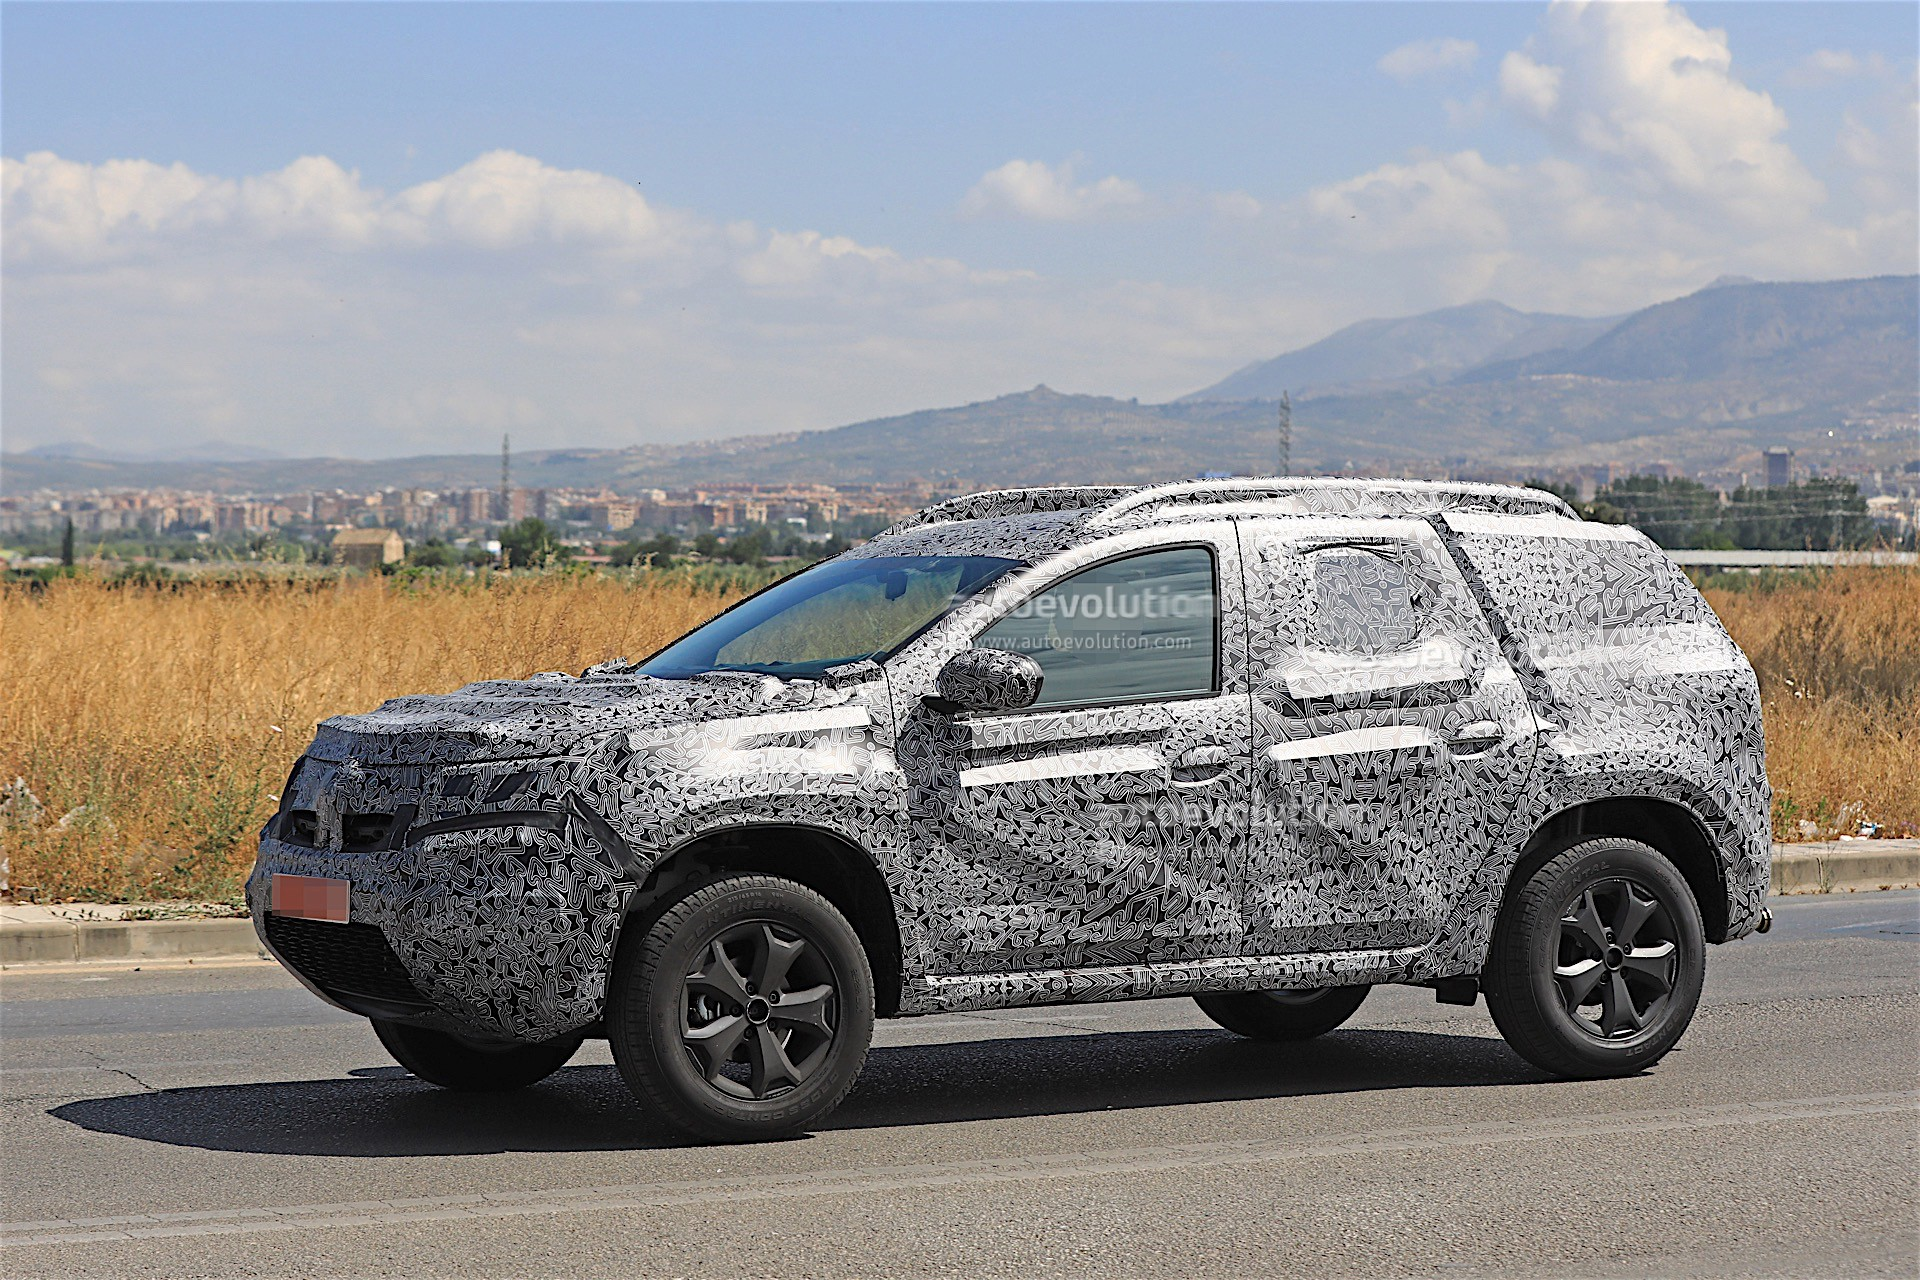 2019 dacia duster spied for the first time prototype looks familiar autoevolution. Black Bedroom Furniture Sets. Home Design Ideas